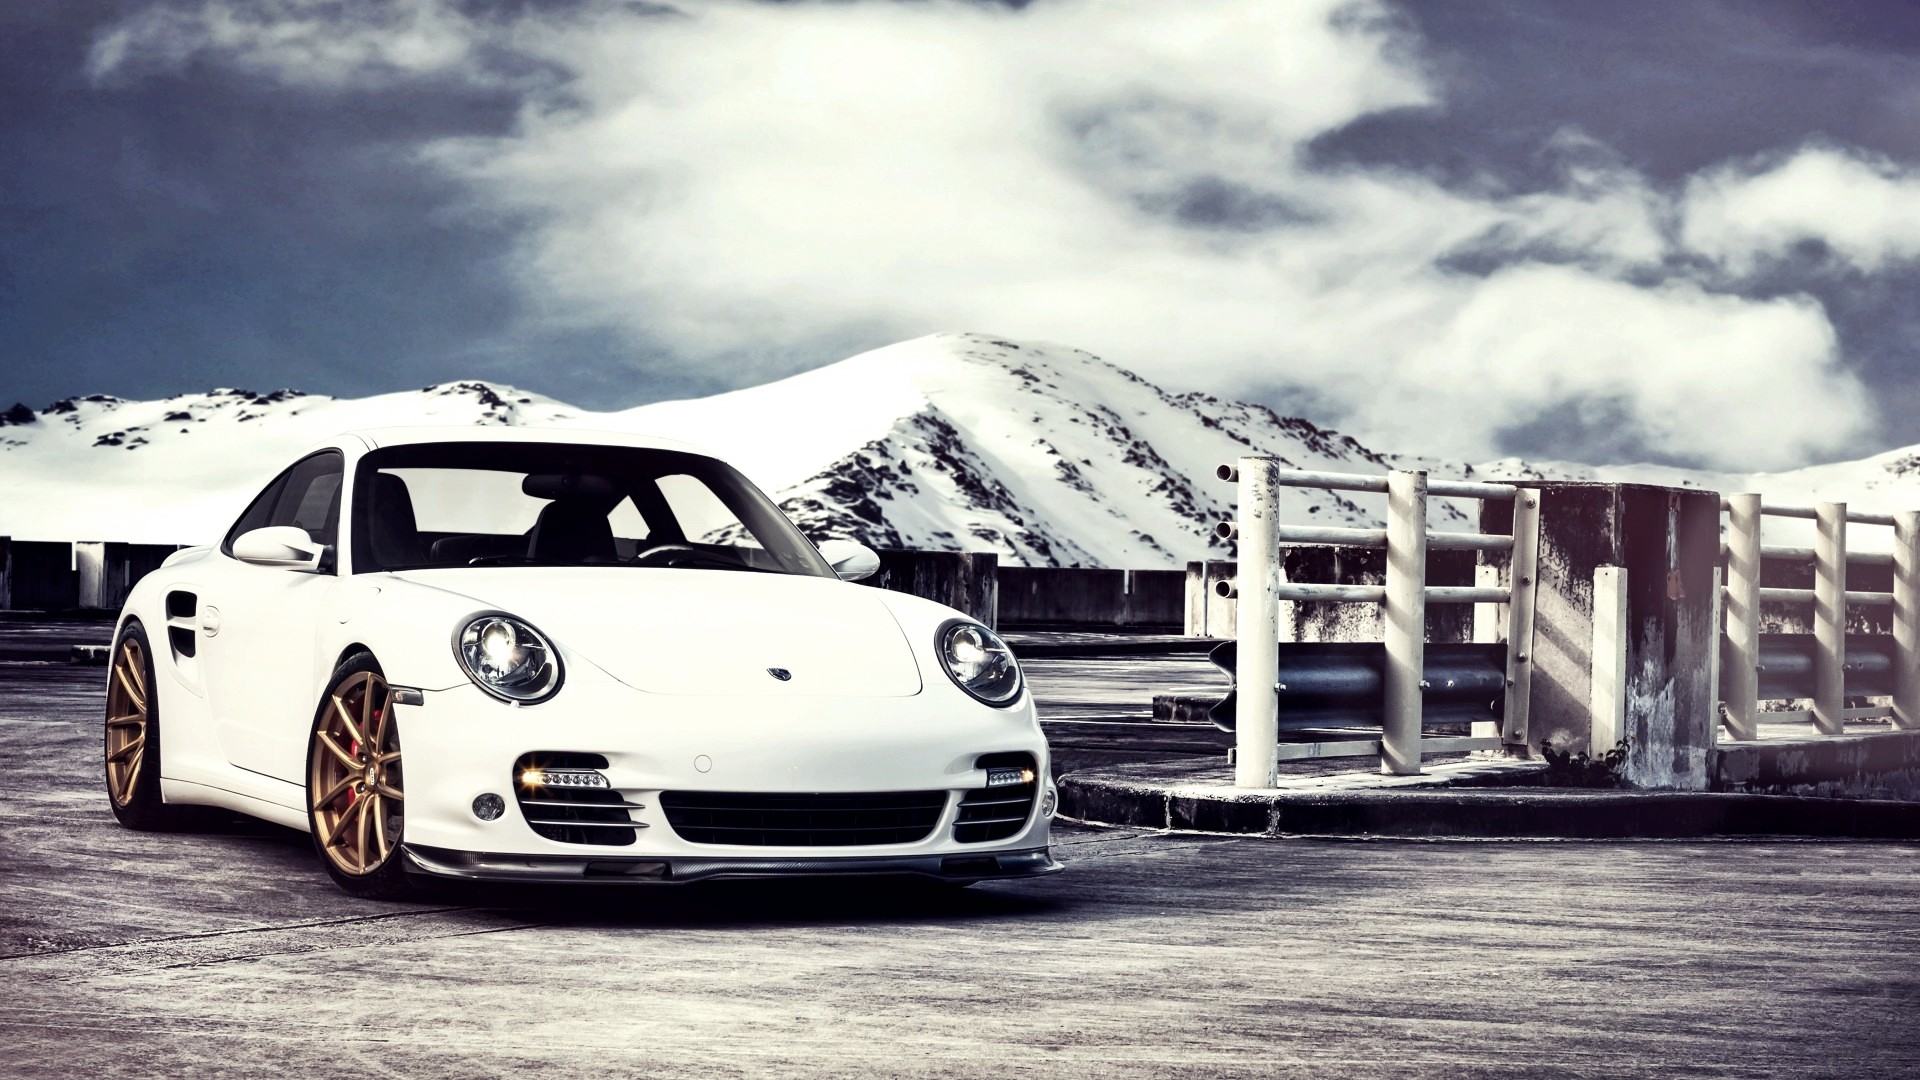 Porsche Hd Wallpapers 1080p: 15 Excellent HD Porsche Wallpapers